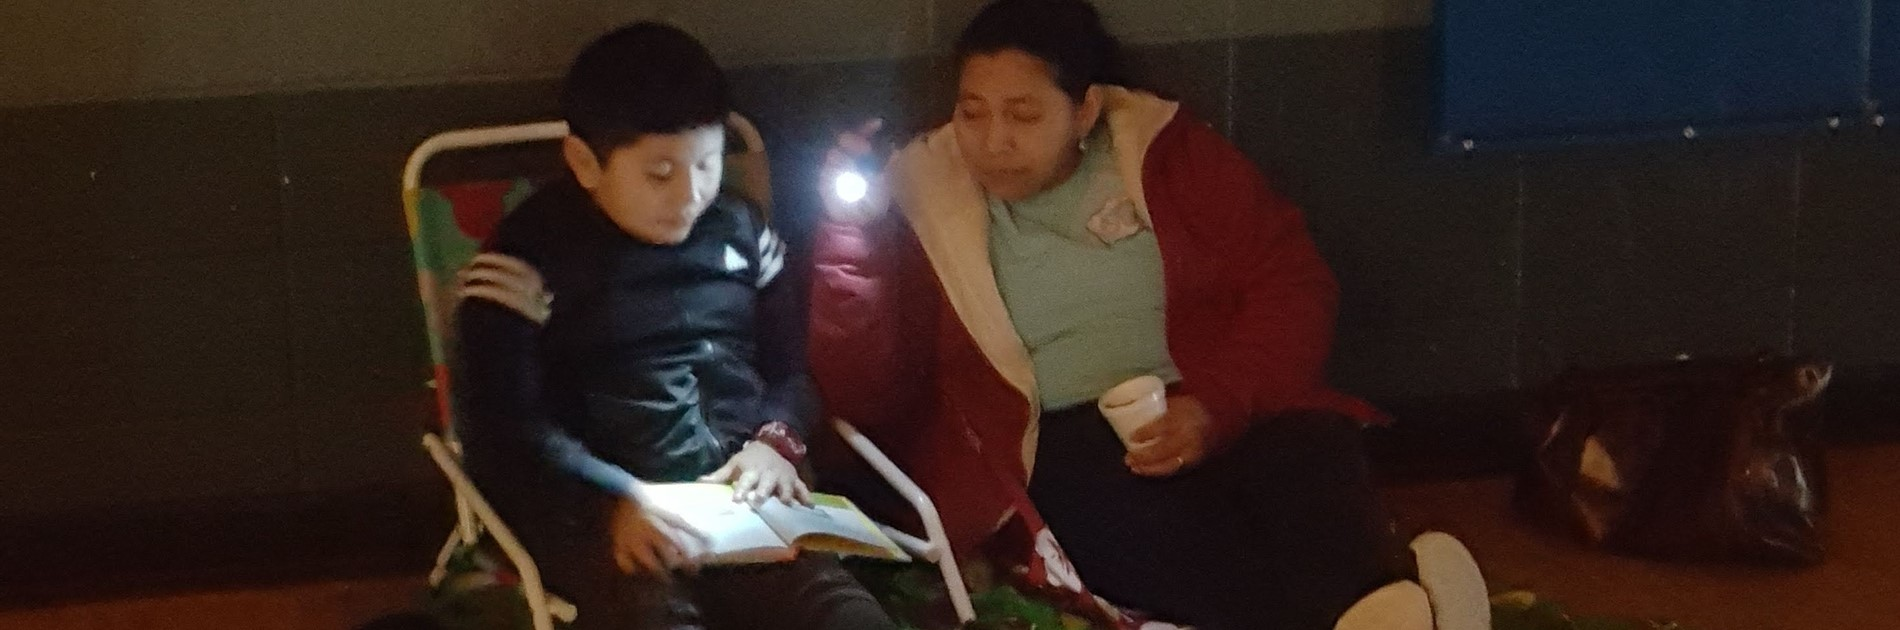 Student and parent reading by flashlight